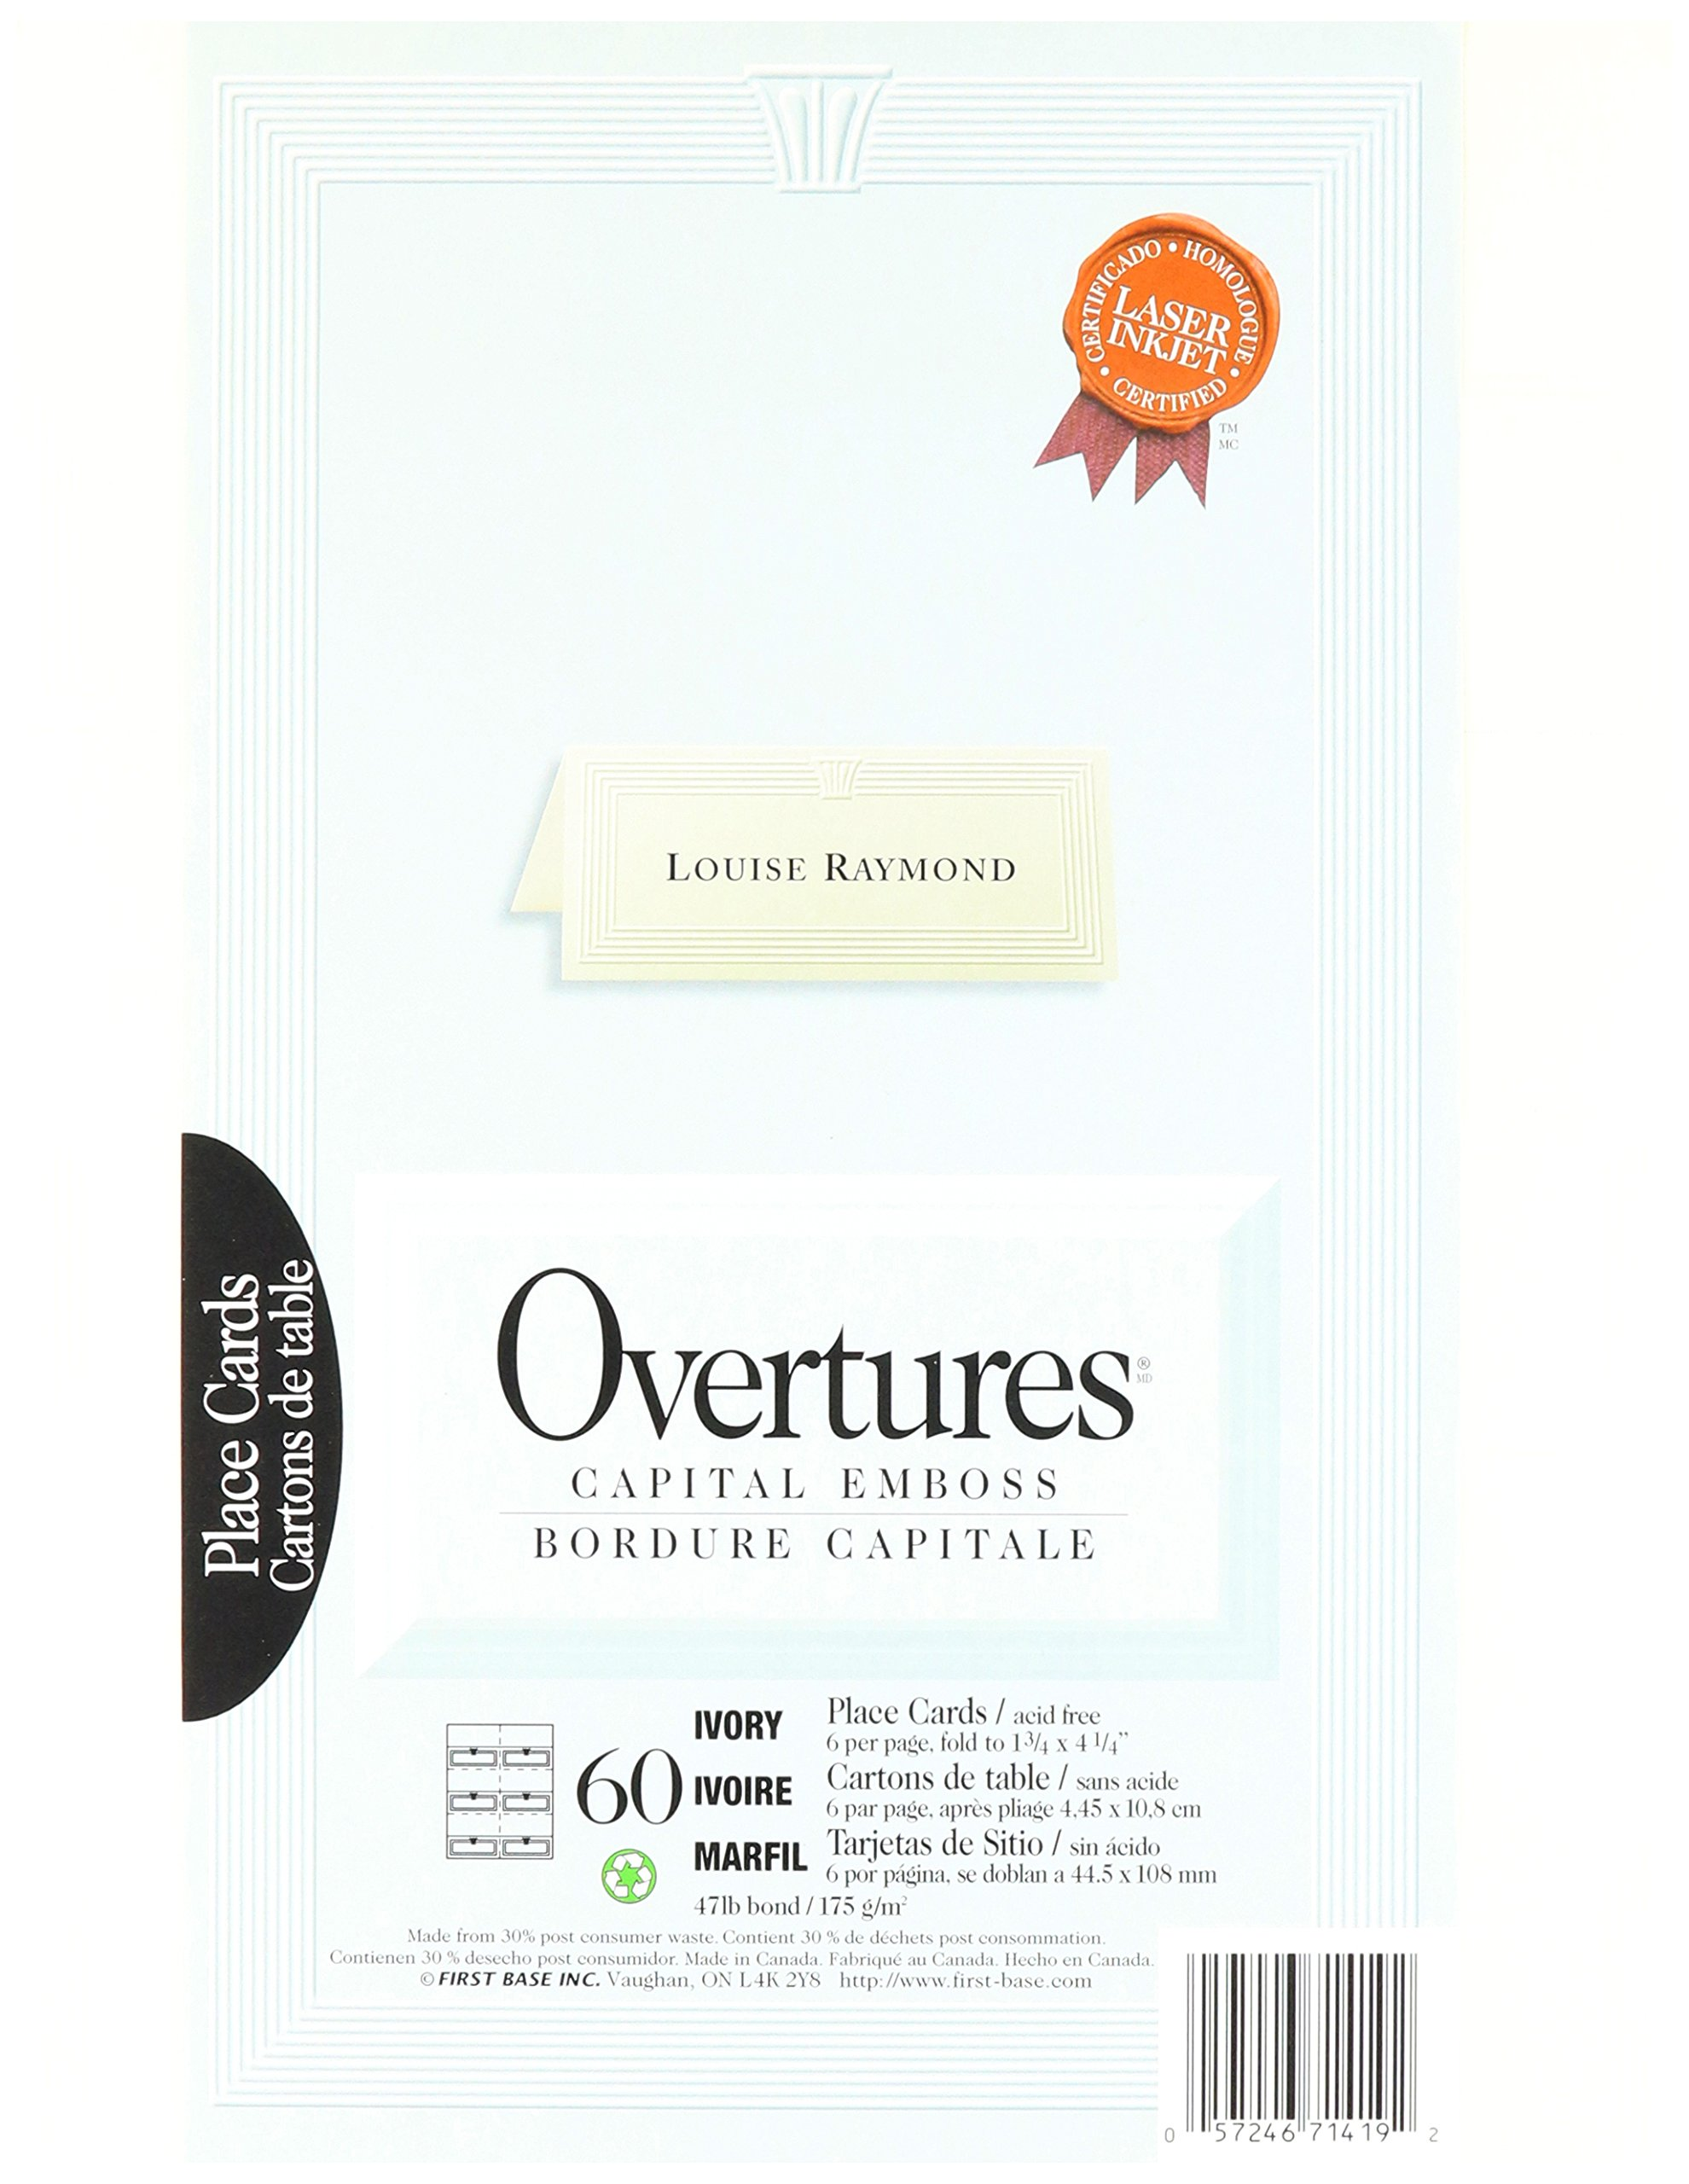 St. James Overtures Capital Emboss Ivory Place Cards, 60 Pack (71419)